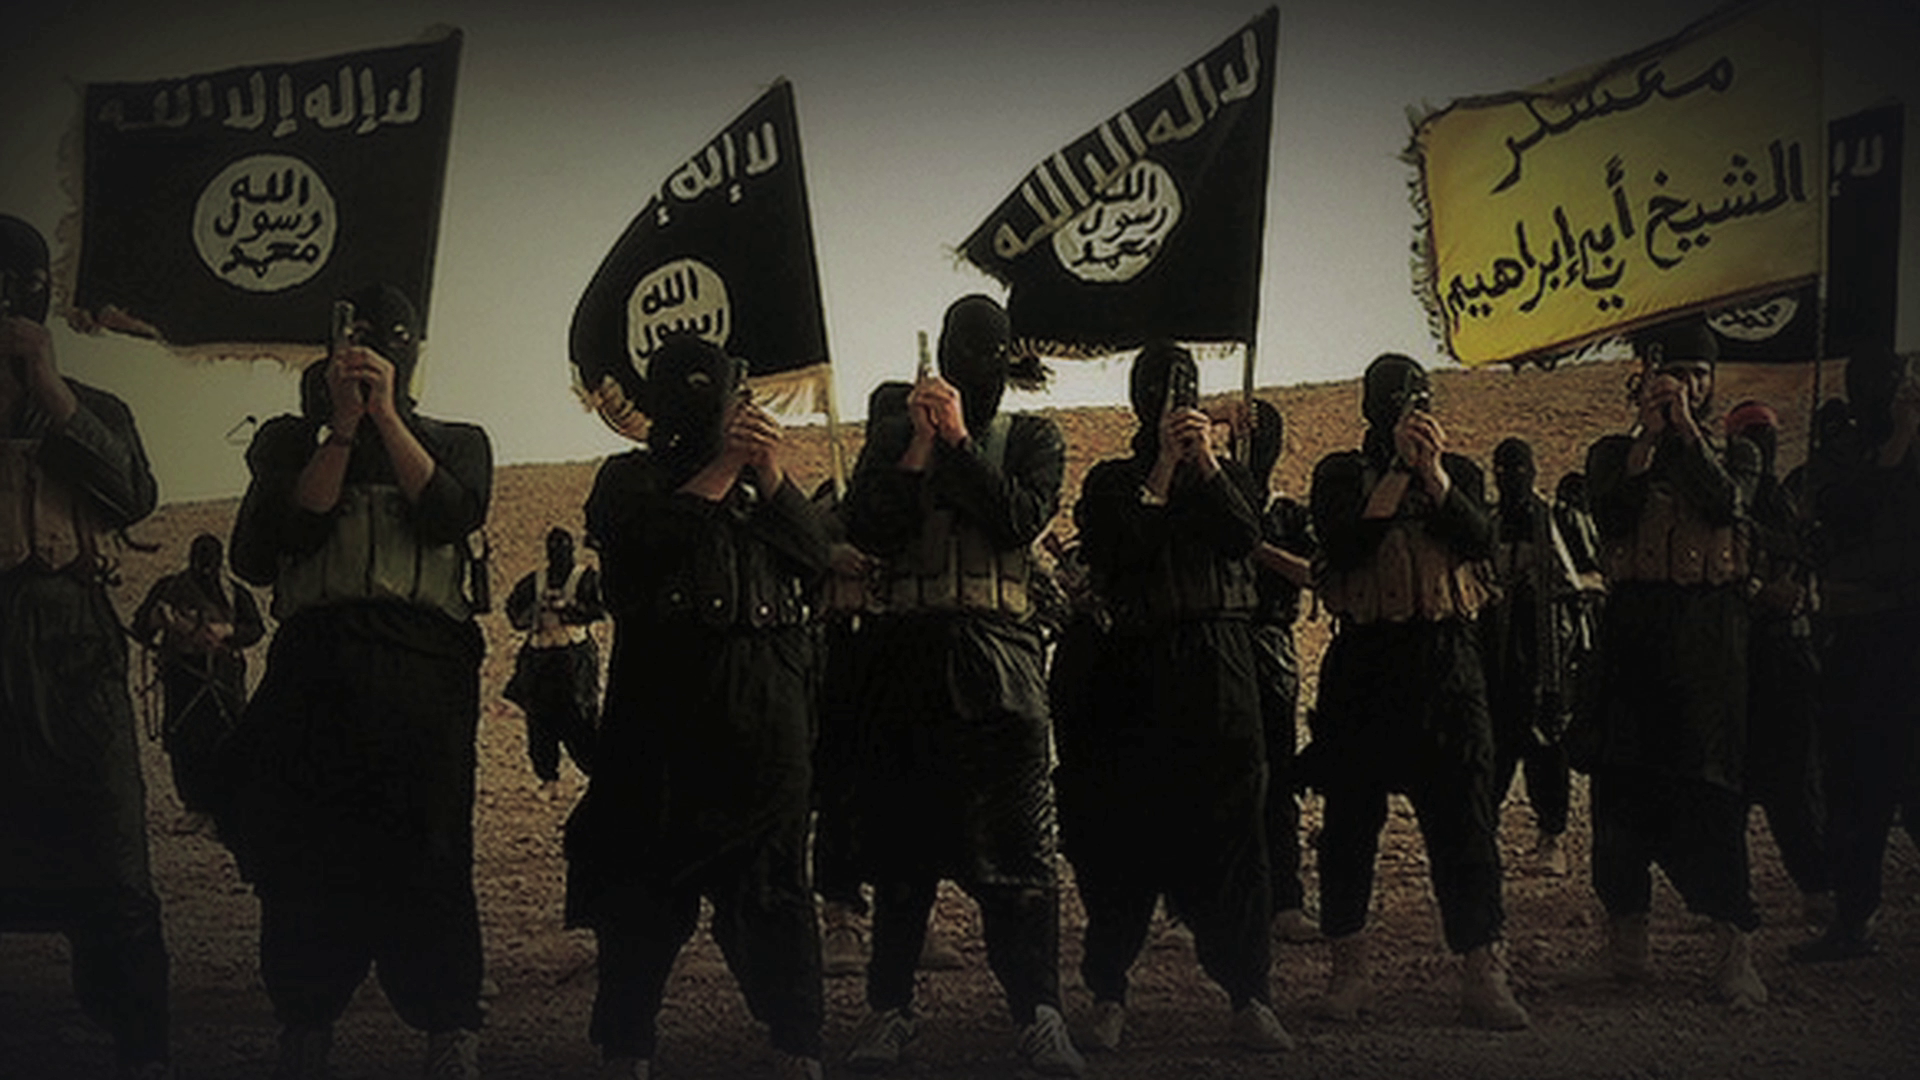 A definitive book on the RISE OF ISIS